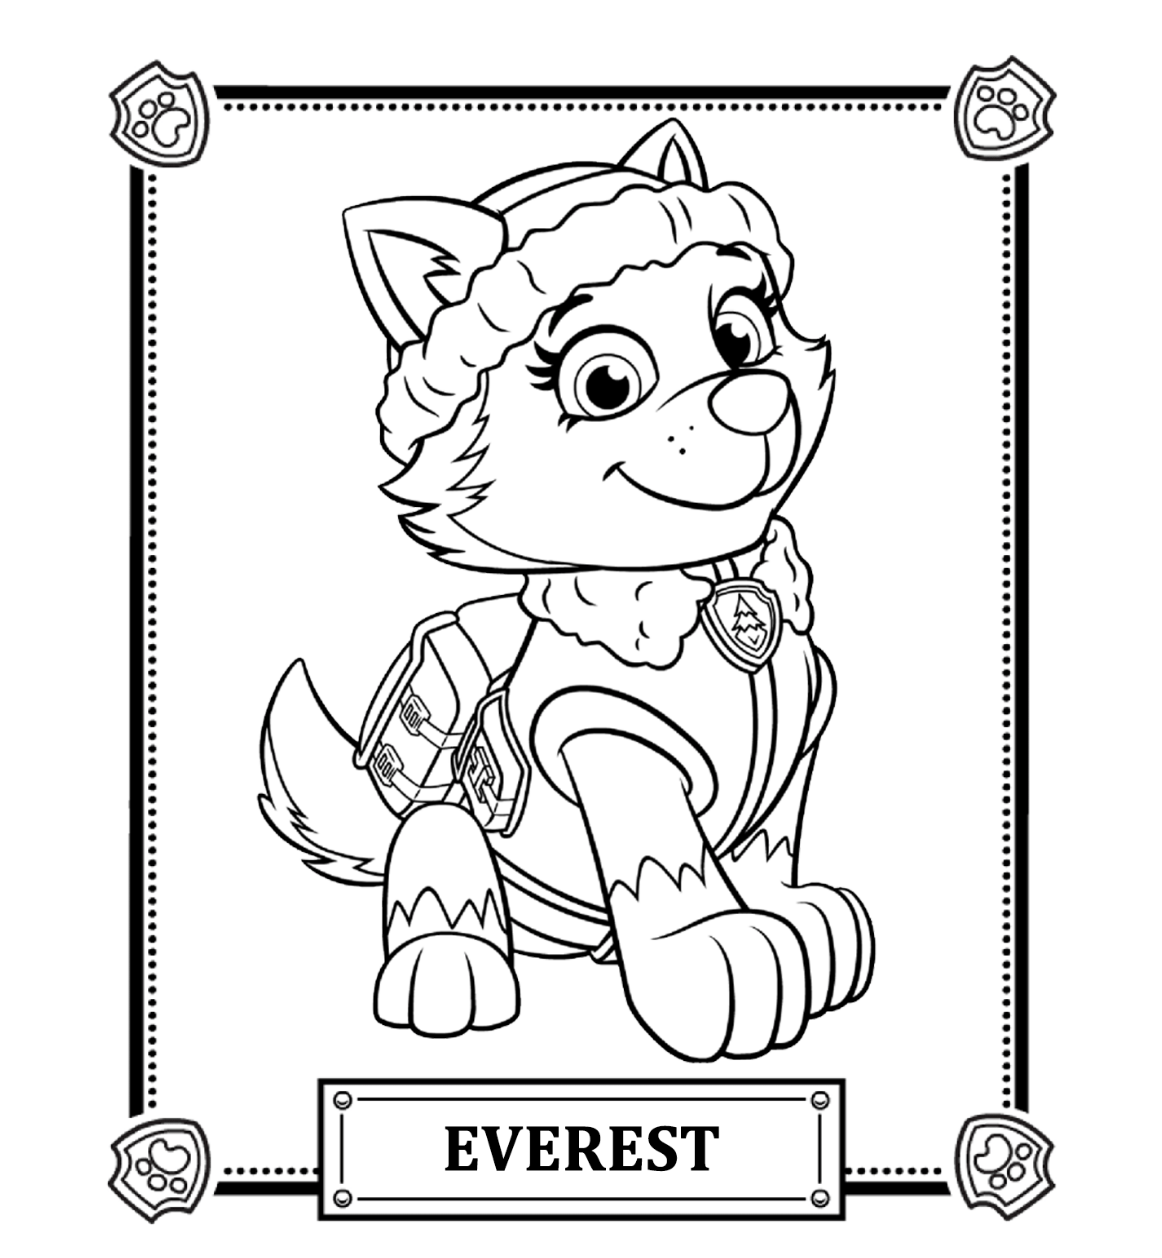 PAW Patrol Everest Coloring Pages … | Pinteres…